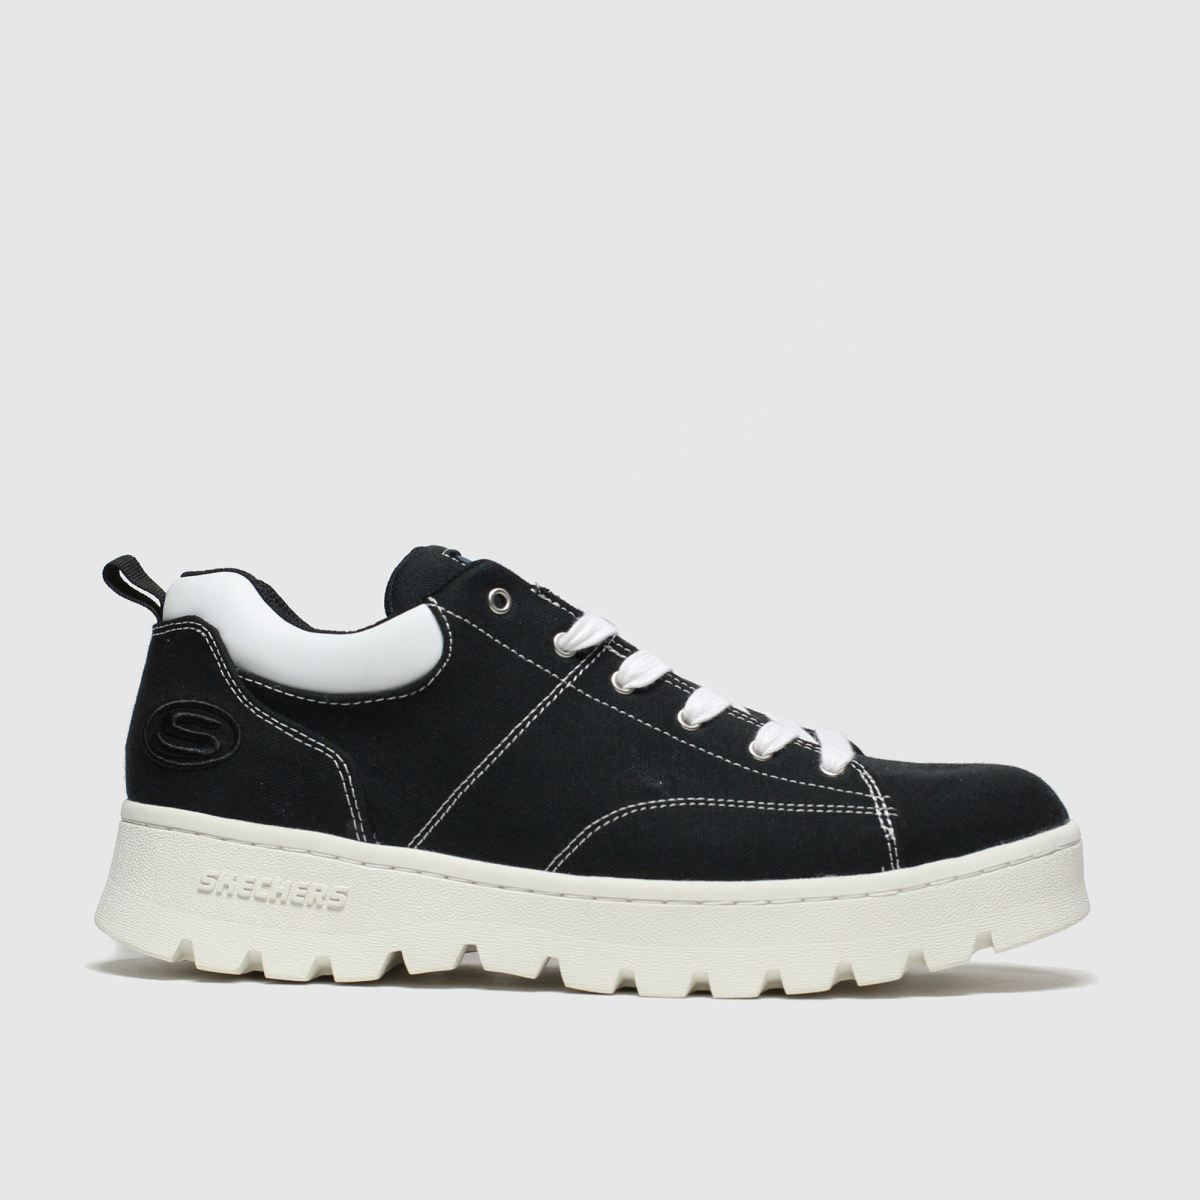 Skechers Black & White Cleats Luckier Trainers